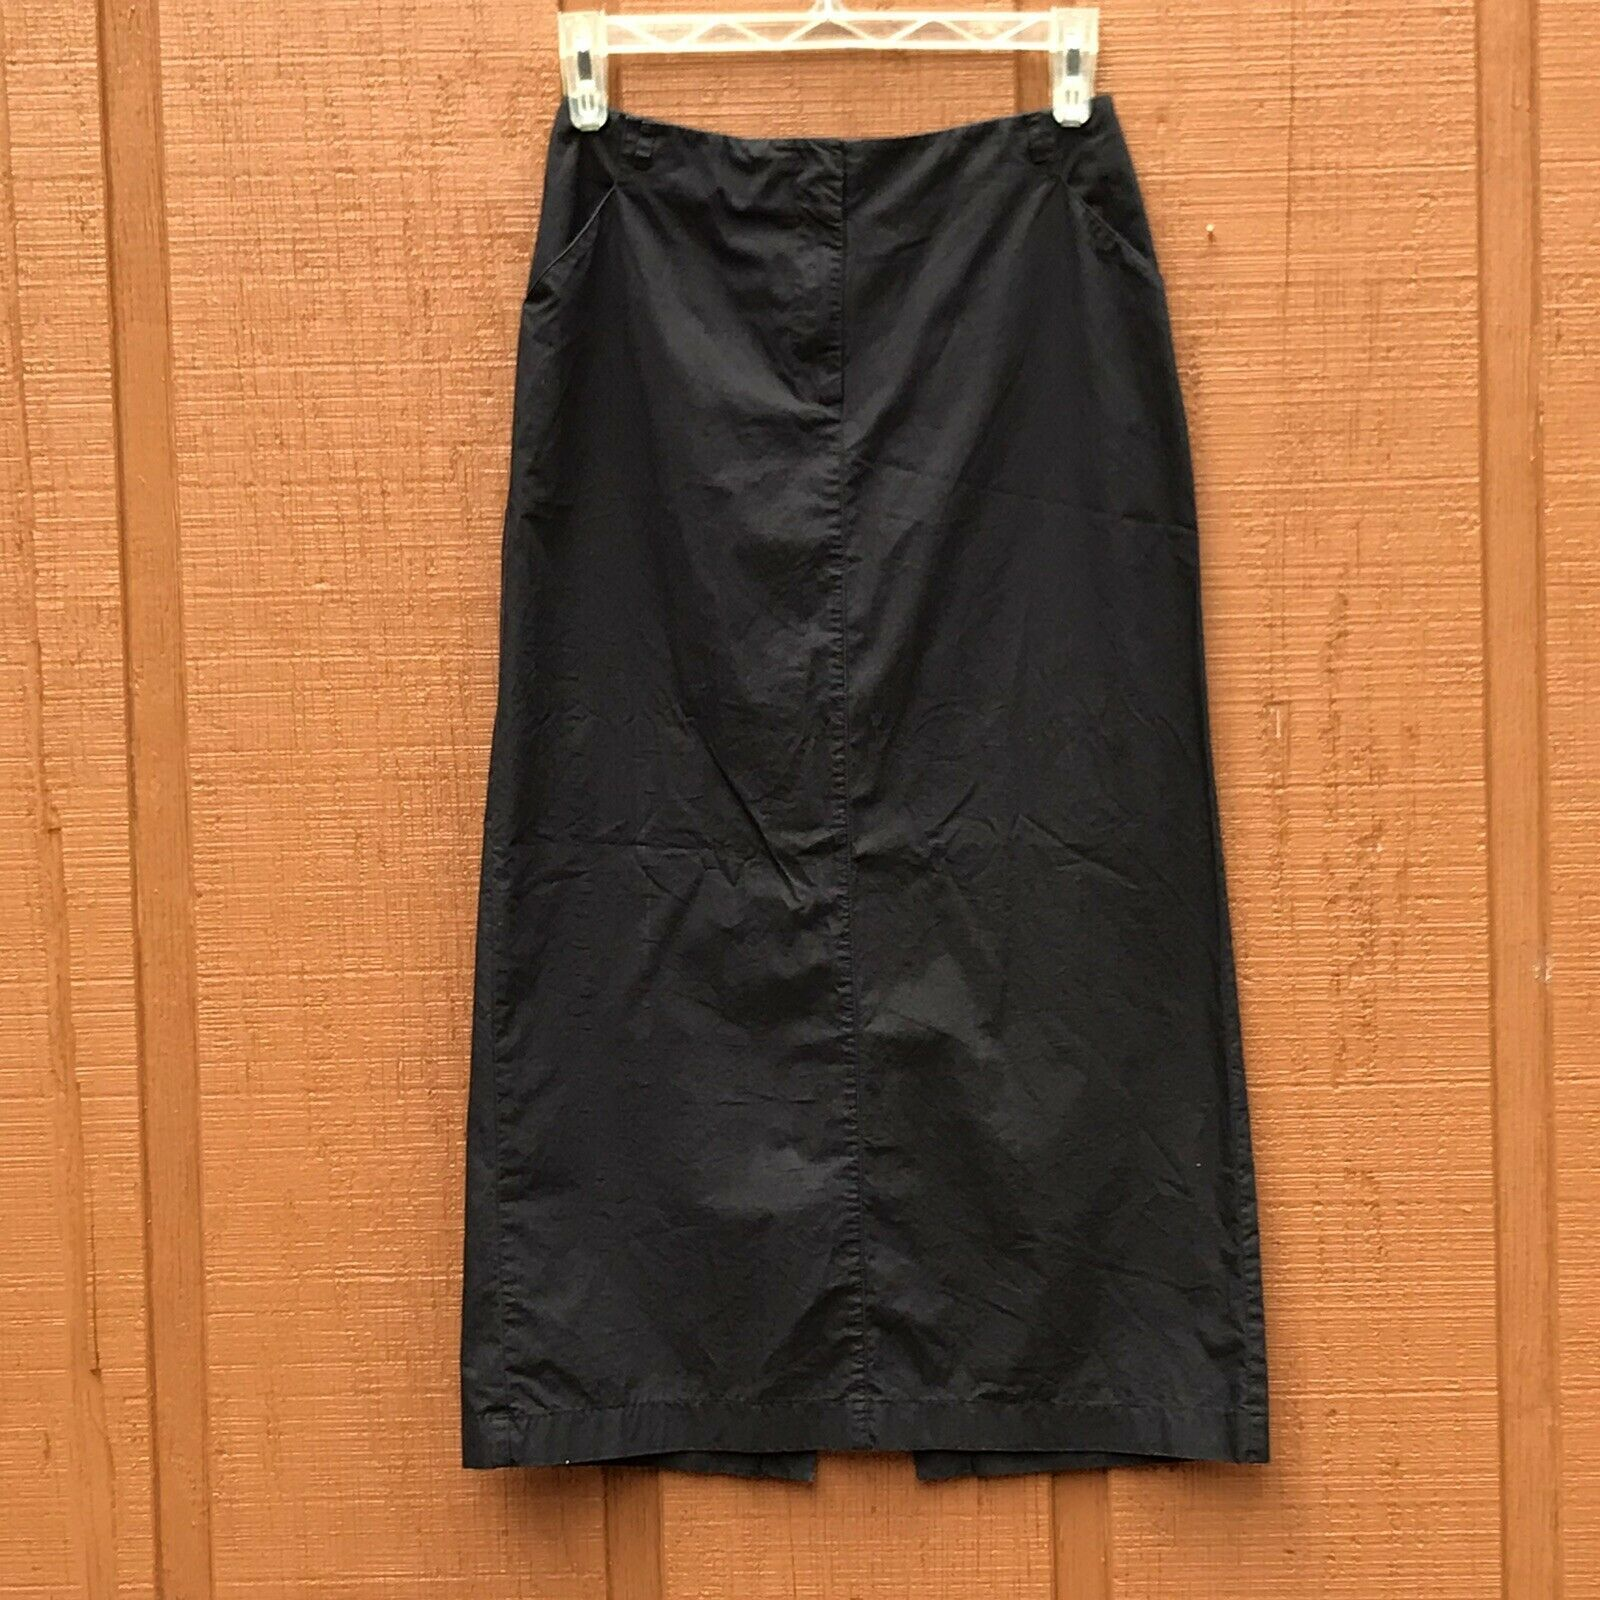 Primary image for Ann Taylor LOFT Womens Black A-Line Midi Skirt Size 8 Work Casual Modest